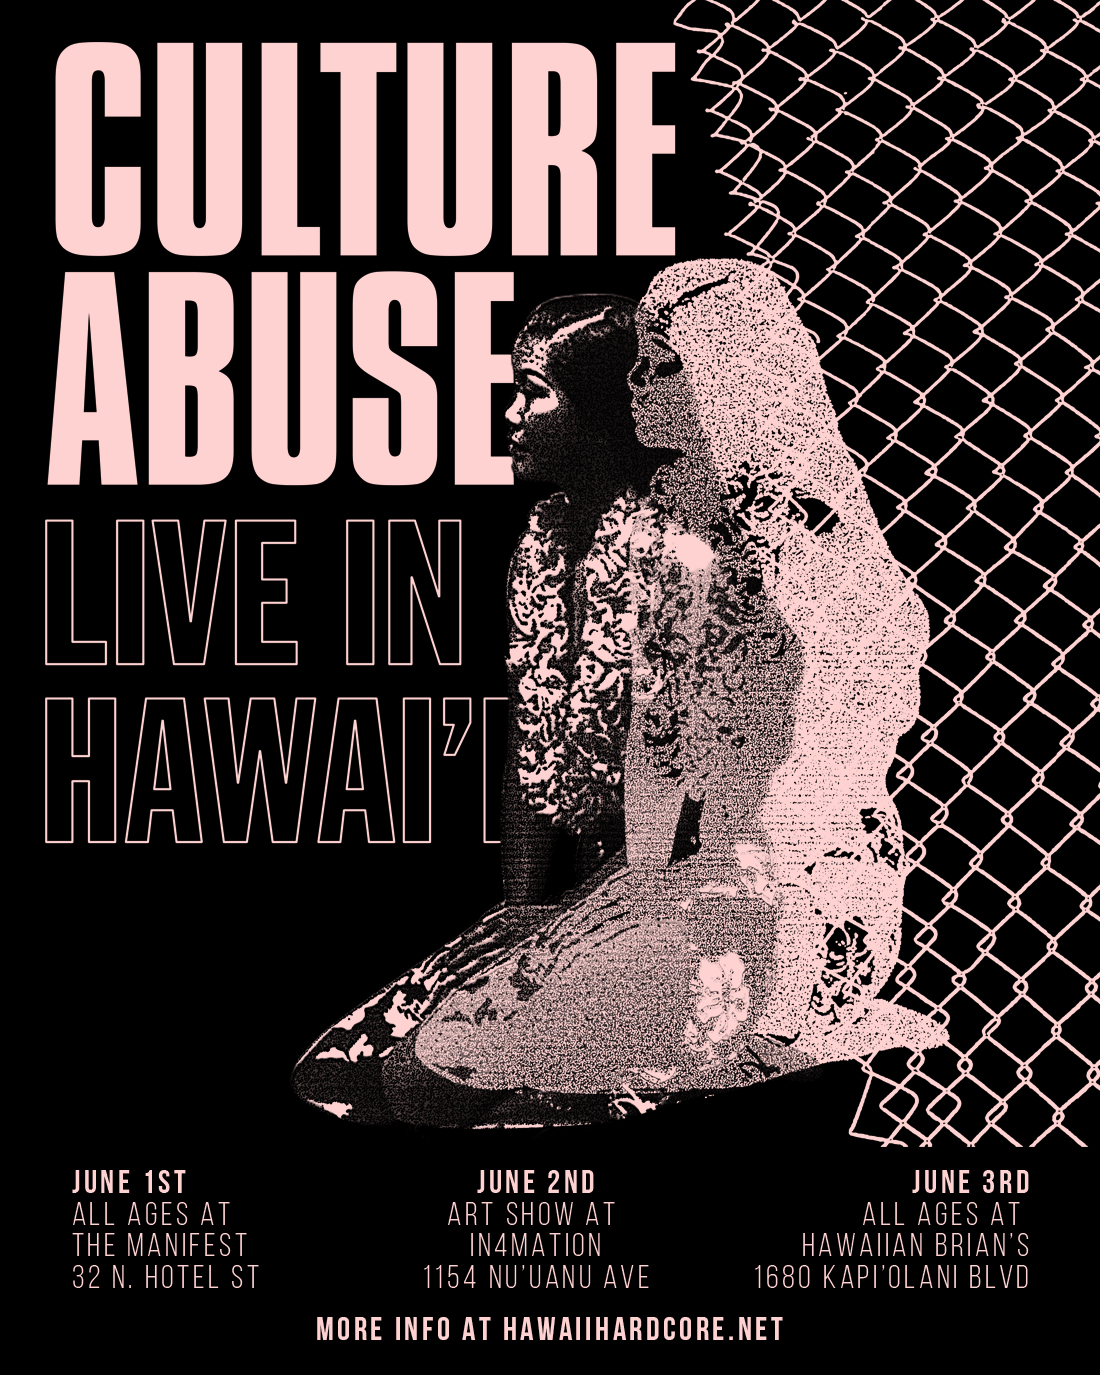 June 3rd at The Studio in Hawaiian Brian's   w/, TBA, Out of Bounds, and Earl Grey.  1680 Kapiolani Blvd.  Doors 730 Music 8-11pm  $10 ALL AGES.   Facebook Event Page.